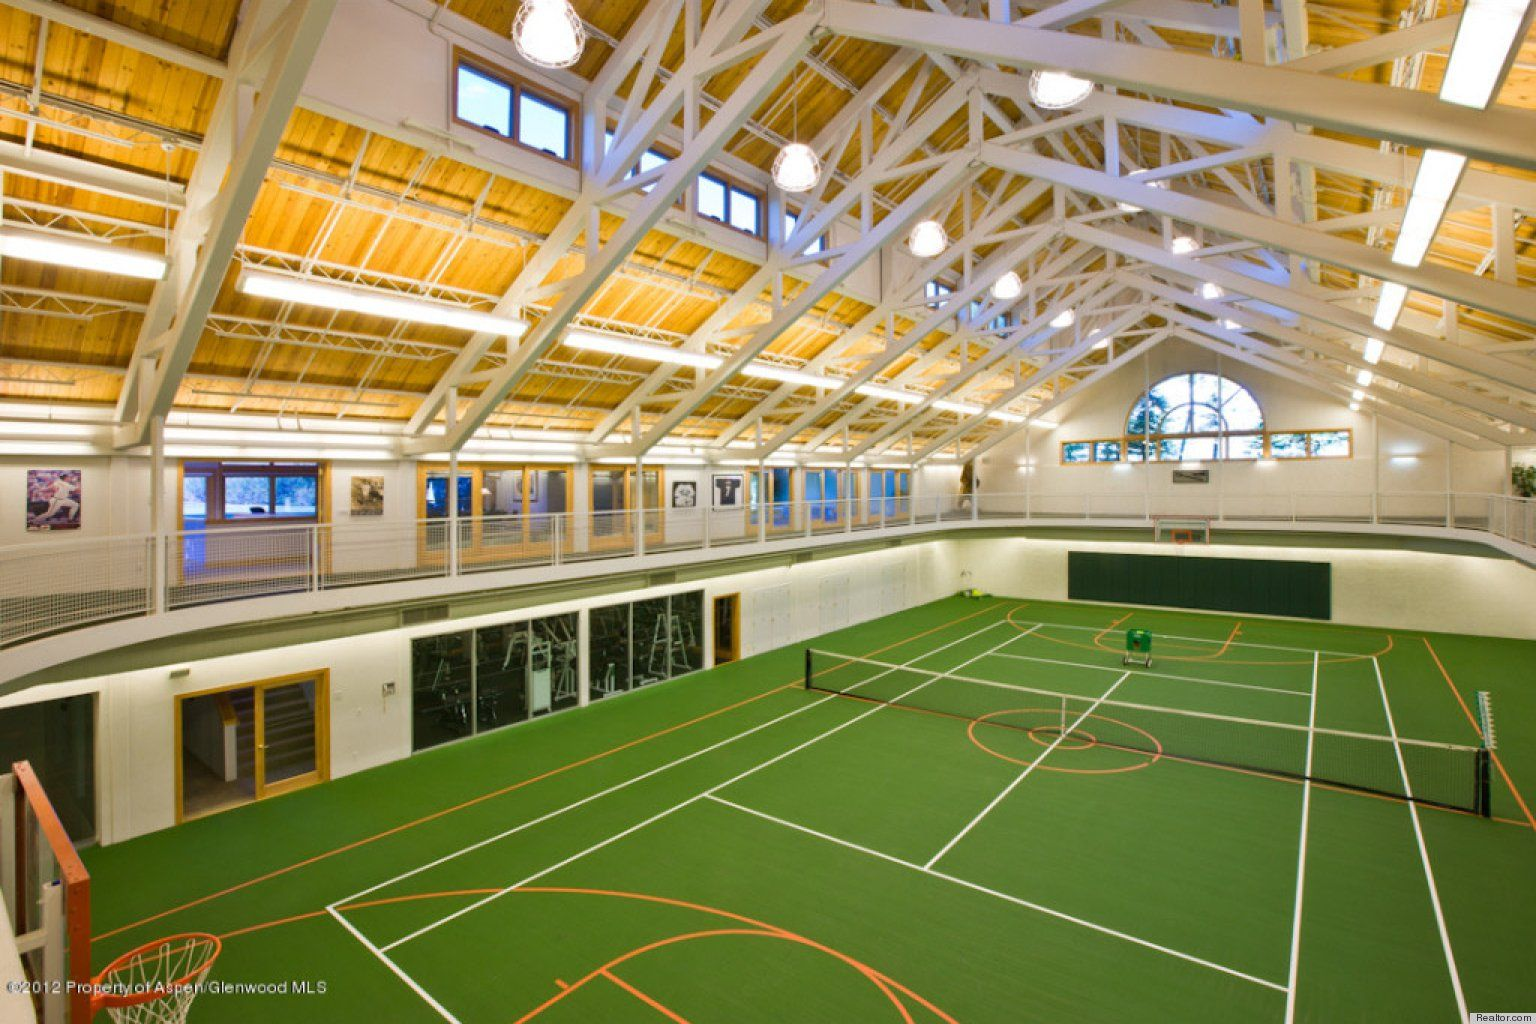 Photos 10 Homes With Tennis Courts That Have Us Ready To Pull Out Our Rackets Indoor Tennis Tennis Court Indoor Track